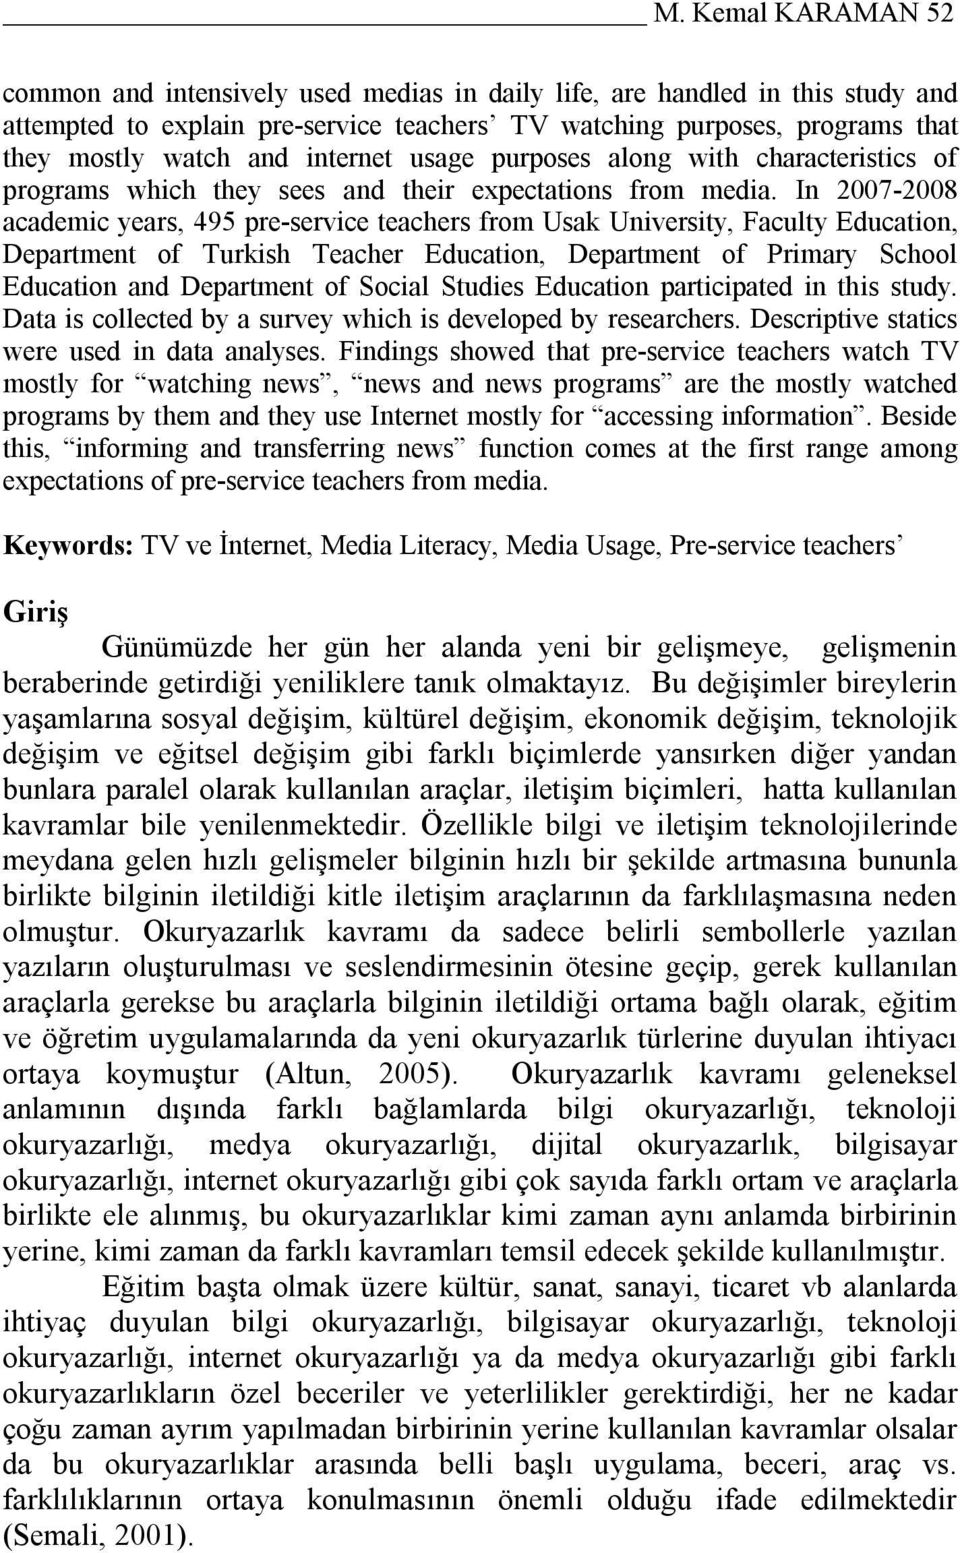 In 2007-2008 academic years, 495 pre-service teachers from Usak University, Faculty Education, Department of Turkish Teacher Education, Department of Primary School Education and Department of Social